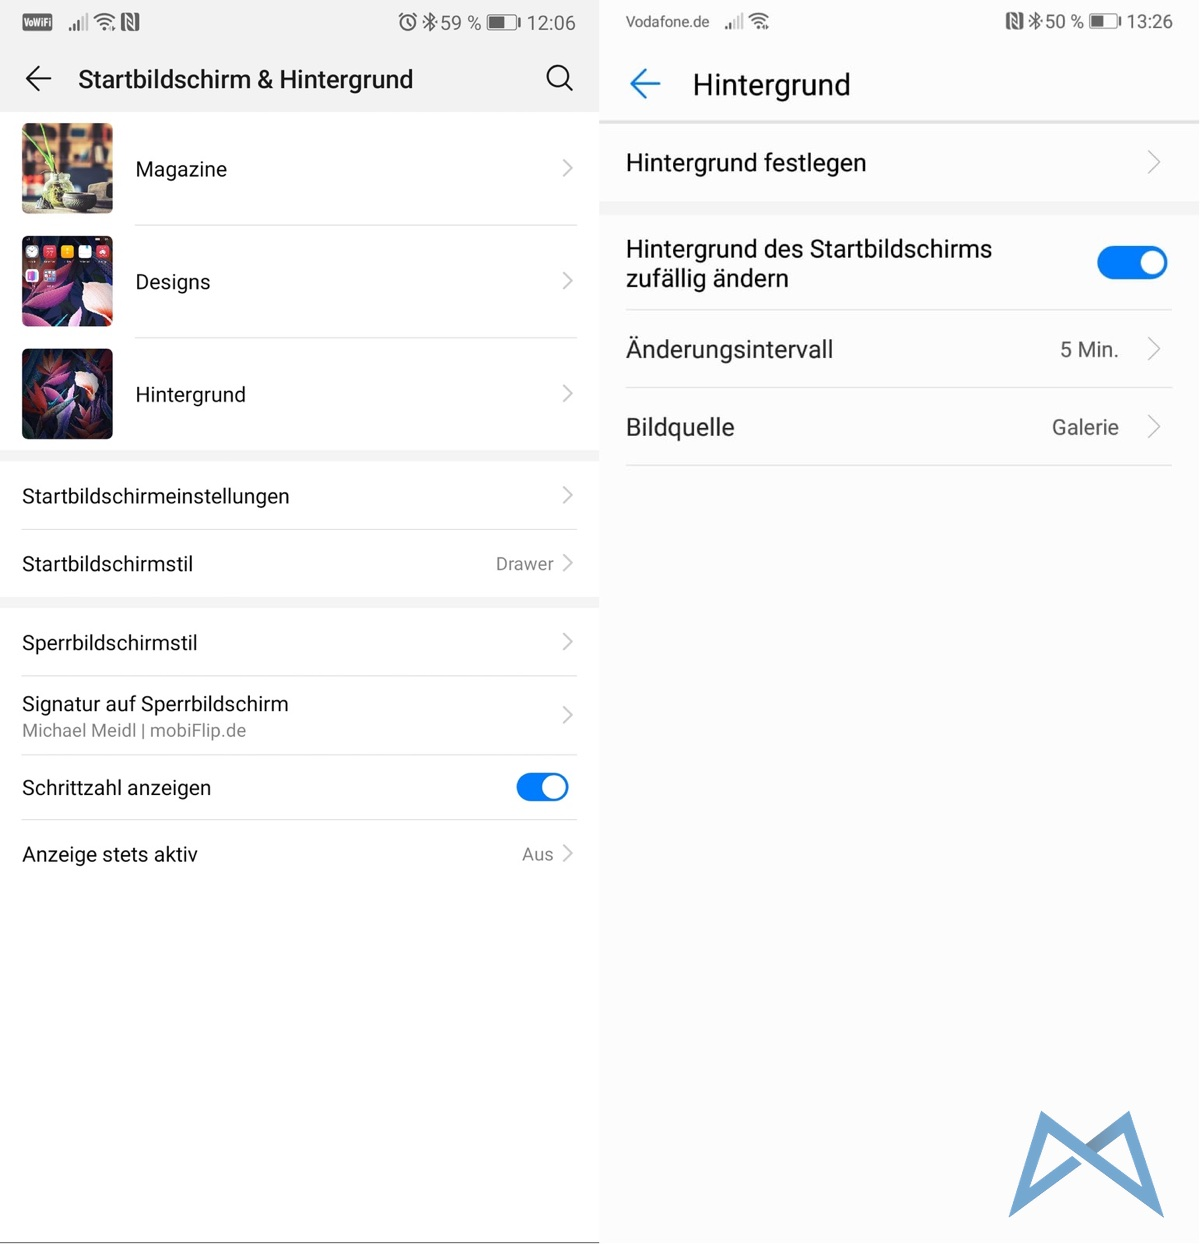 Huawei P20 Pro Android 9 Emui 9.0.0 Beta Background